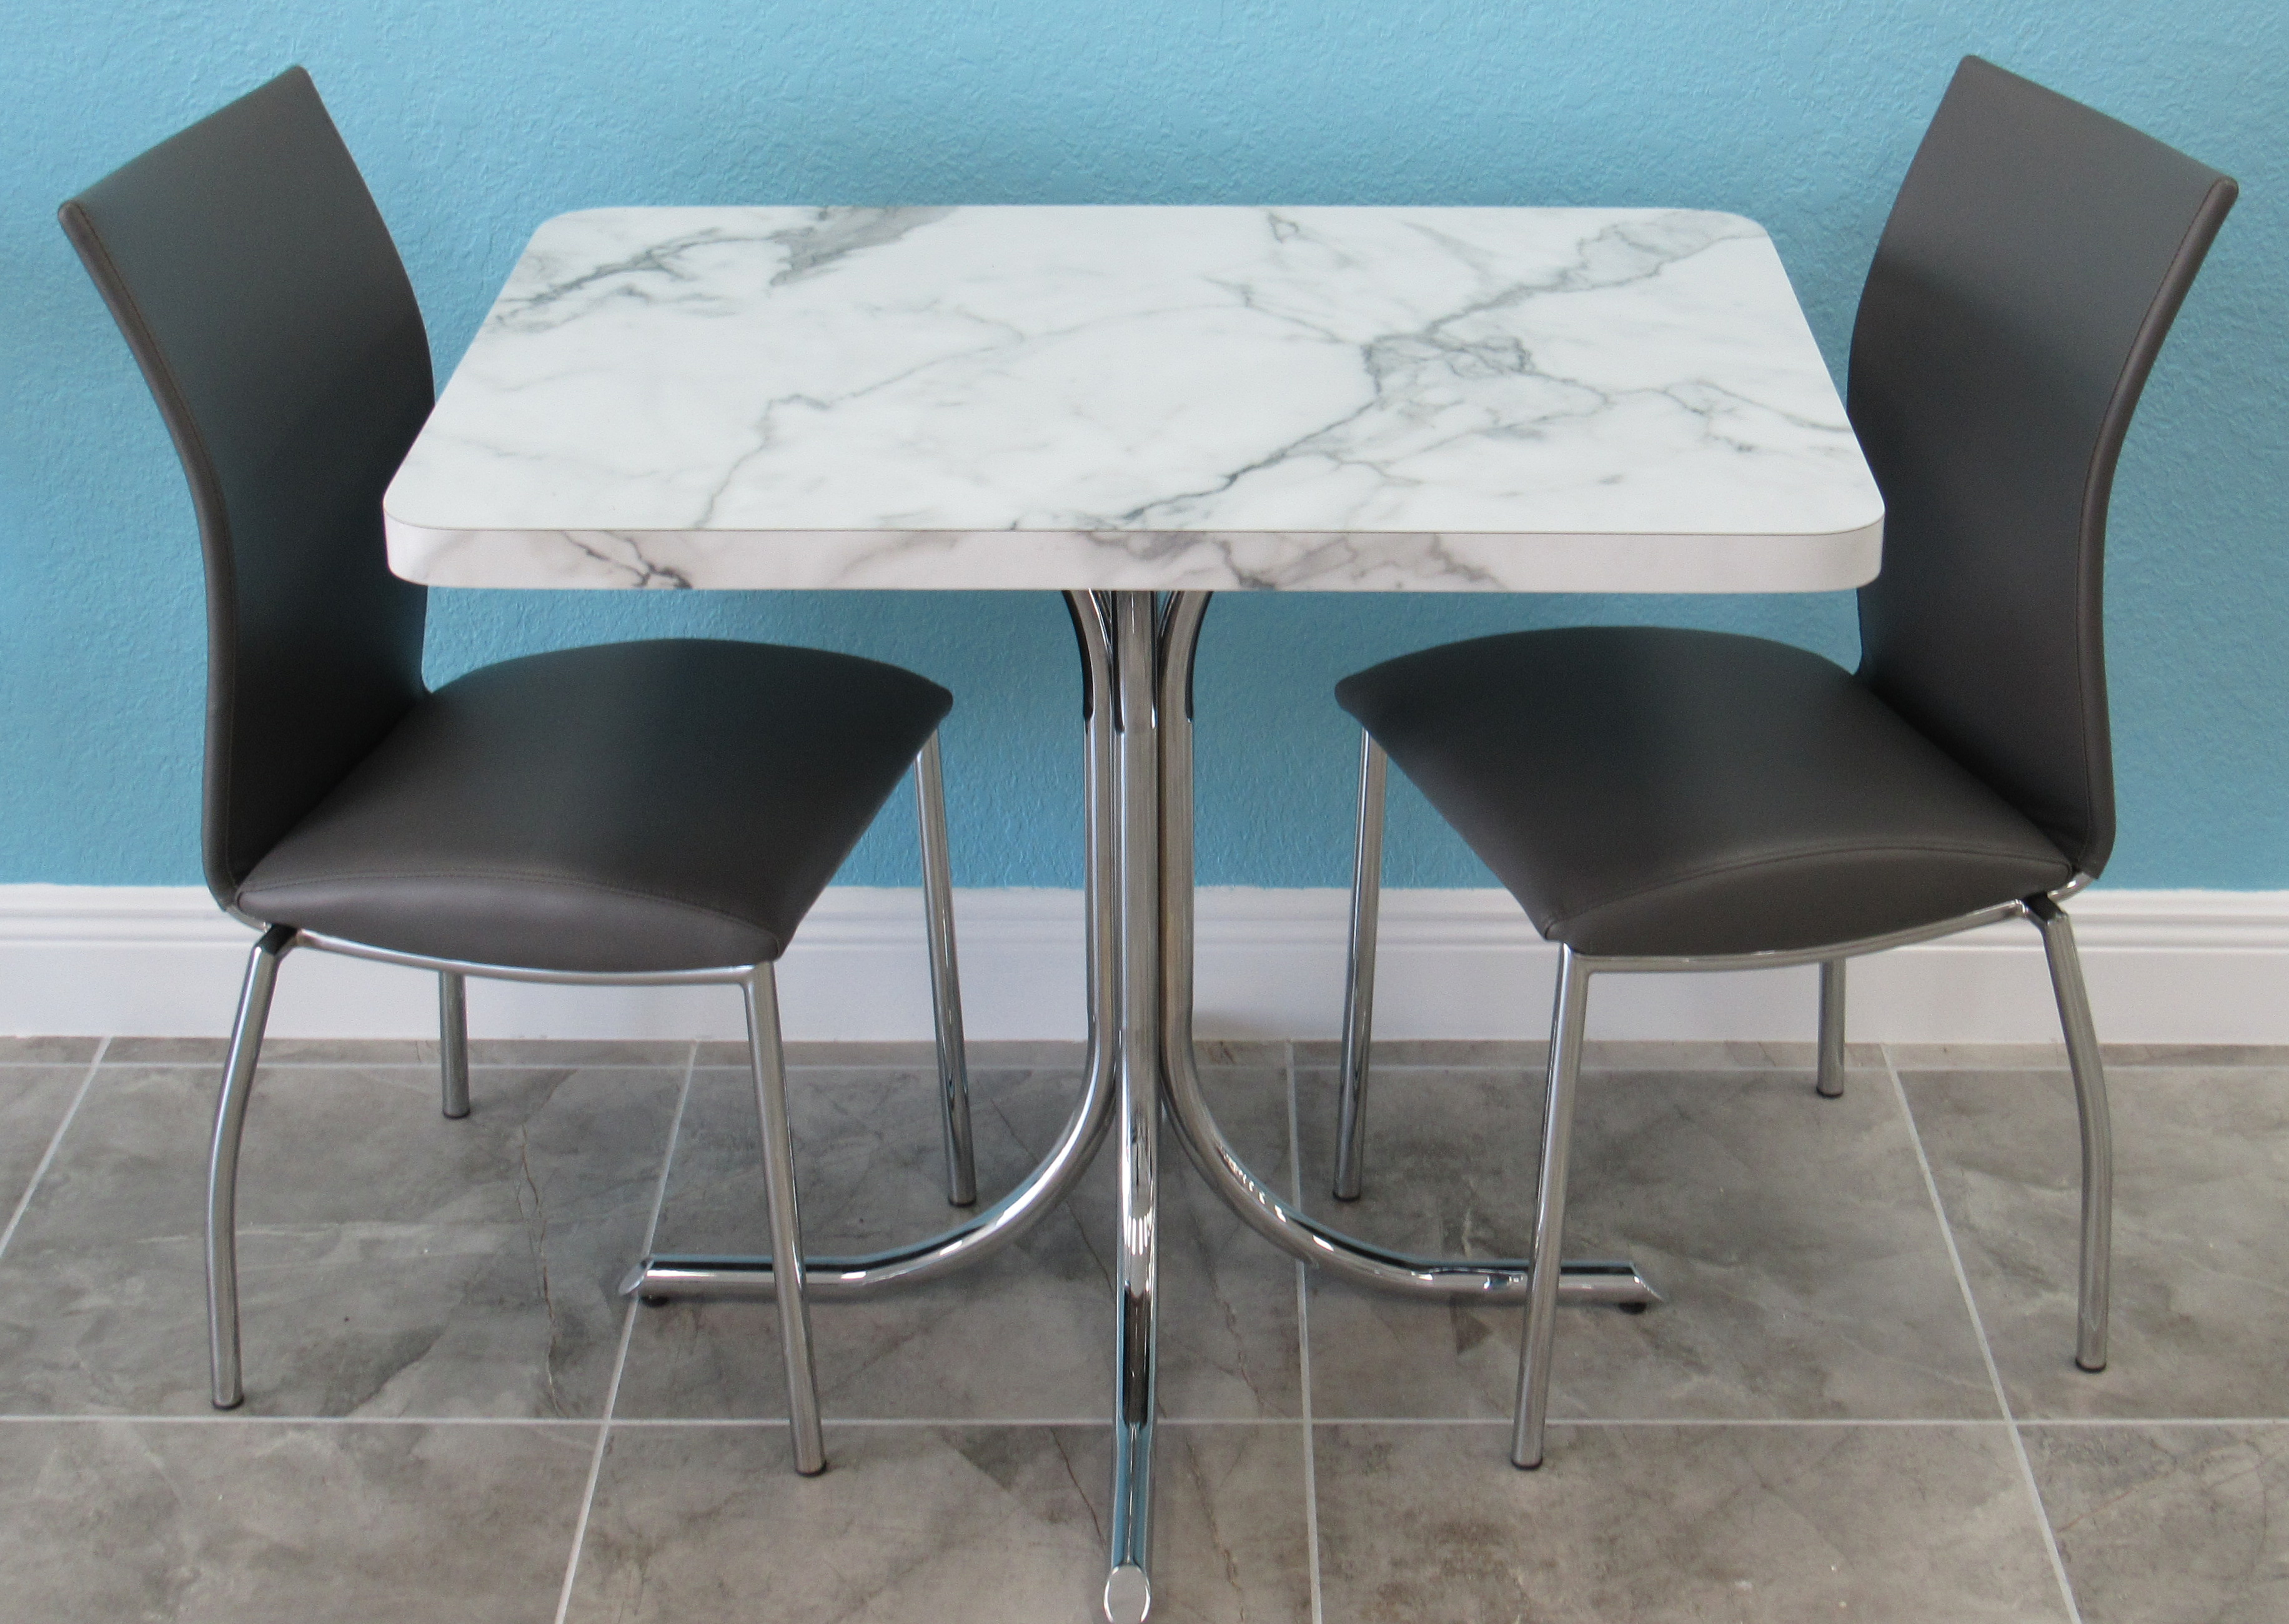 Formica Table With Small Chrome Kitchen Chairs Alfa Dinettes